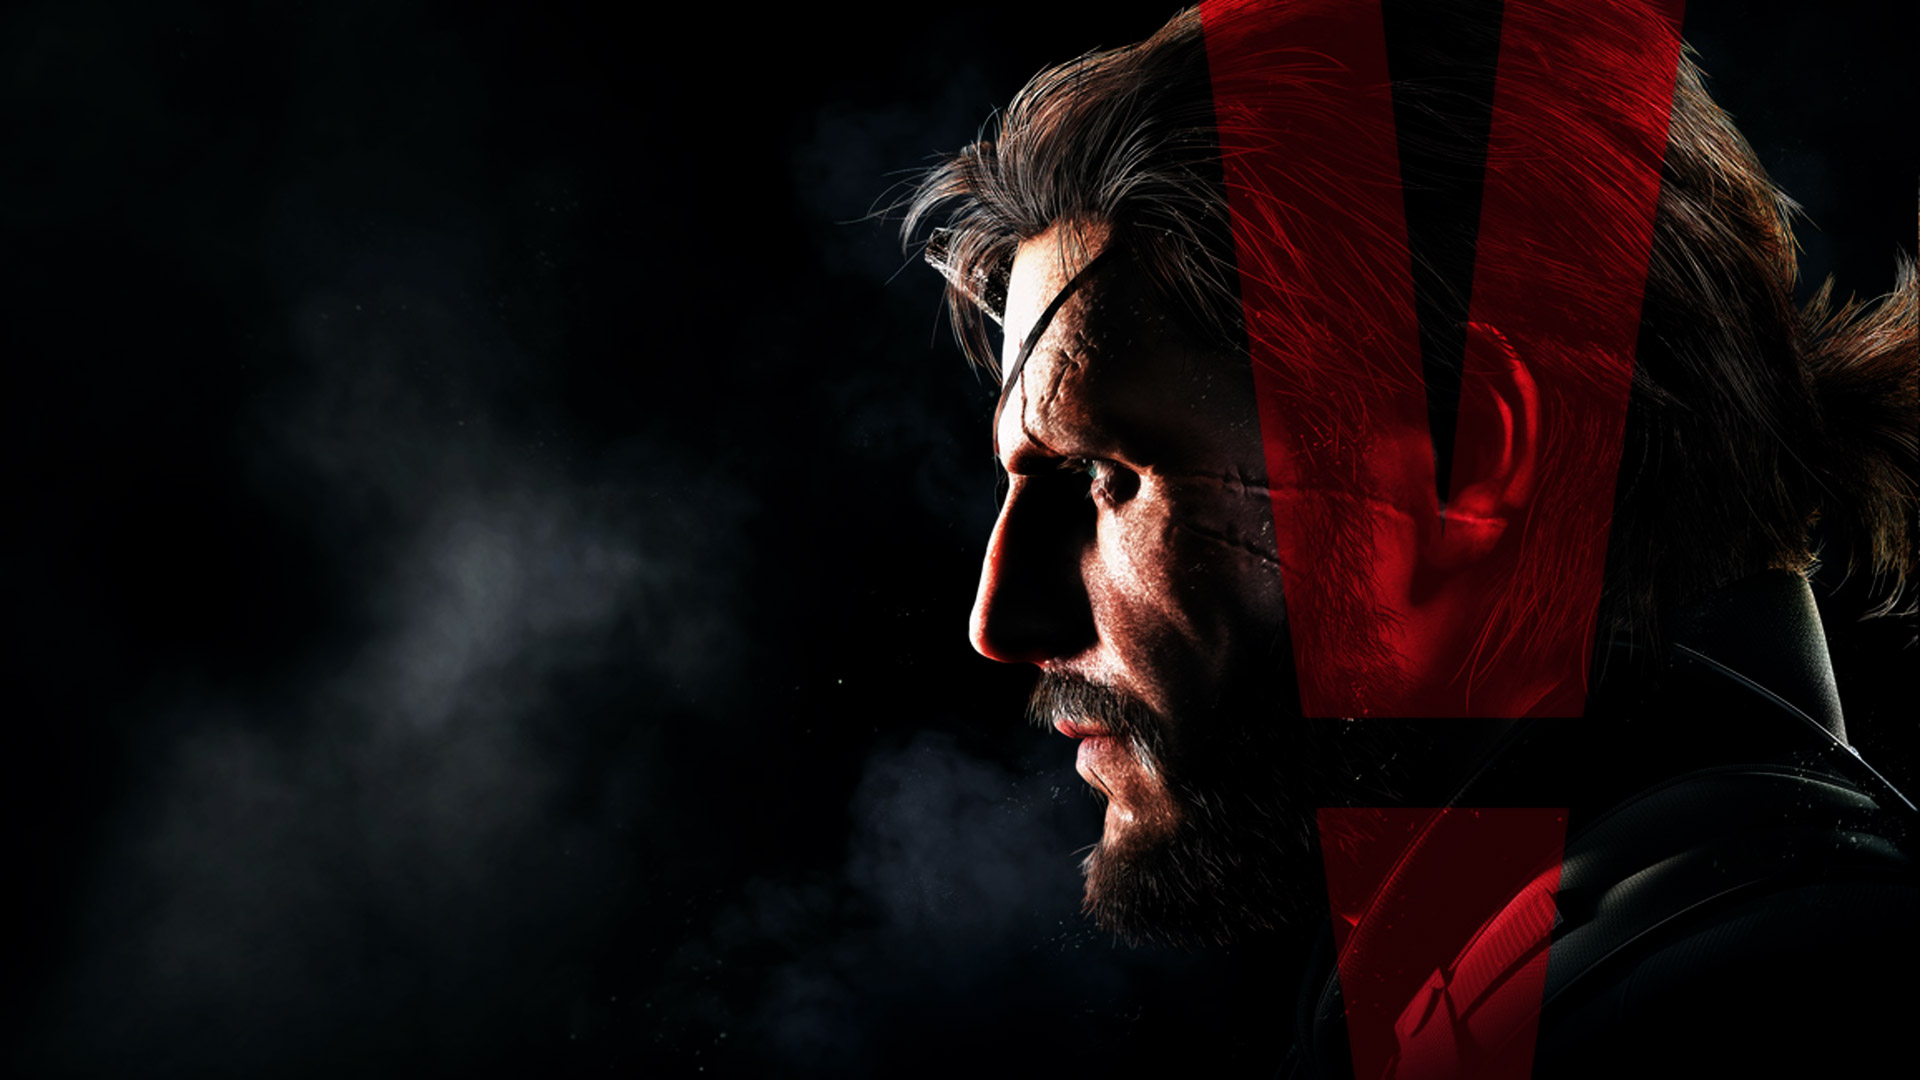 Metal Gear Solid V plus mémorable que The Witcher 3 et Uncharted 4